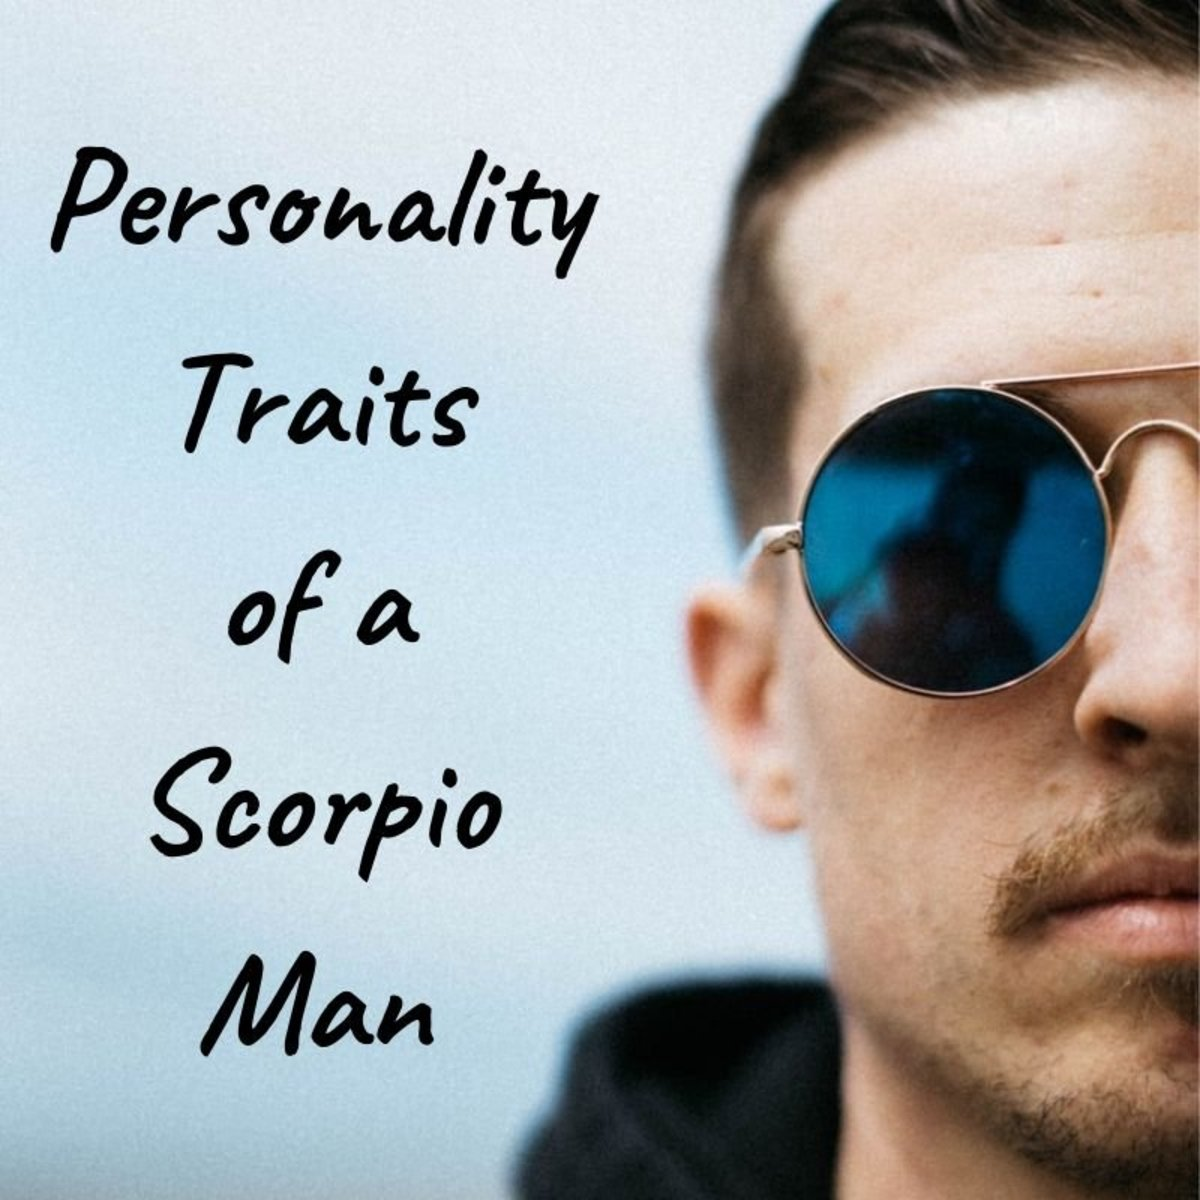 Scorpio men can be hard to read, but they have their patterns.